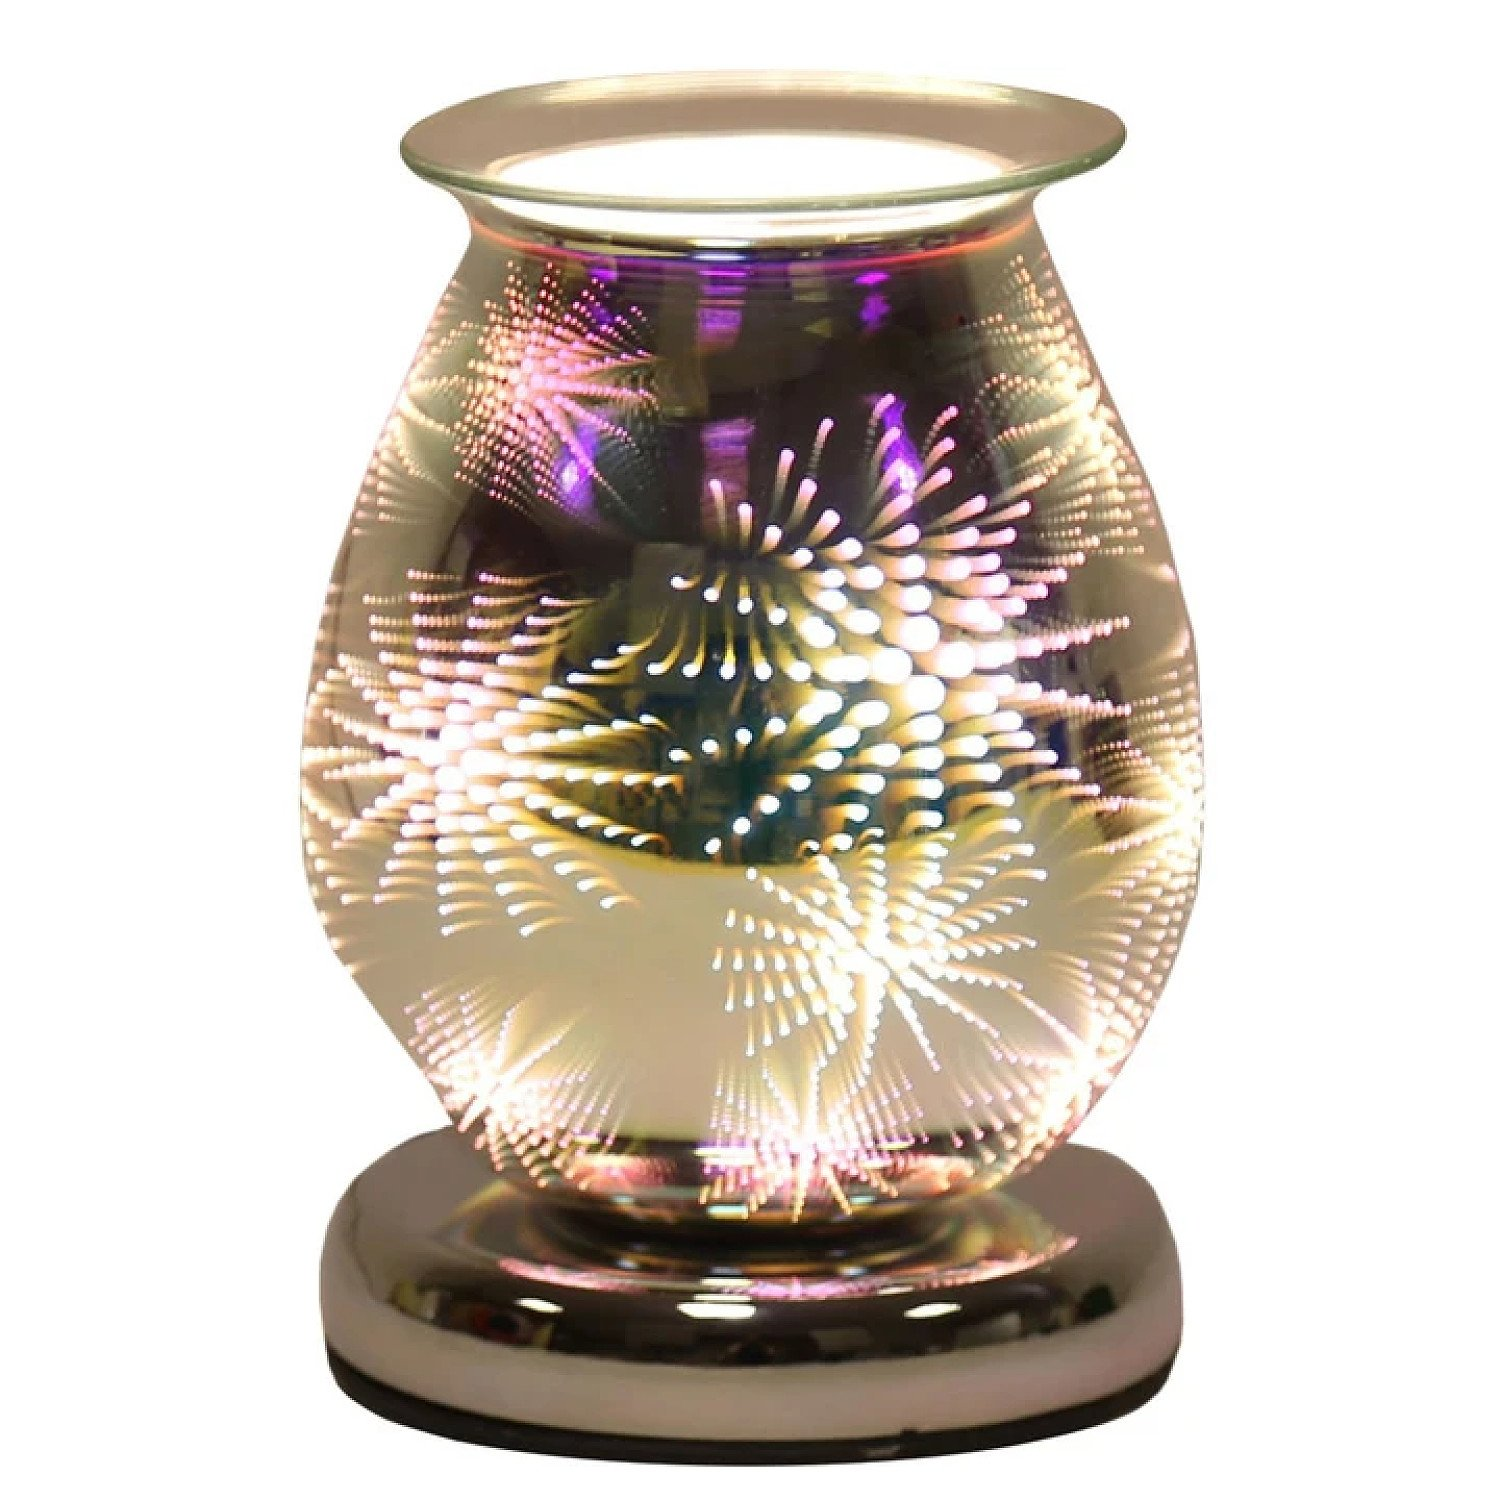 (Firework - Oval) Oval 3D Lights Scented Aroma Wax Burner Electric Touch Lamp